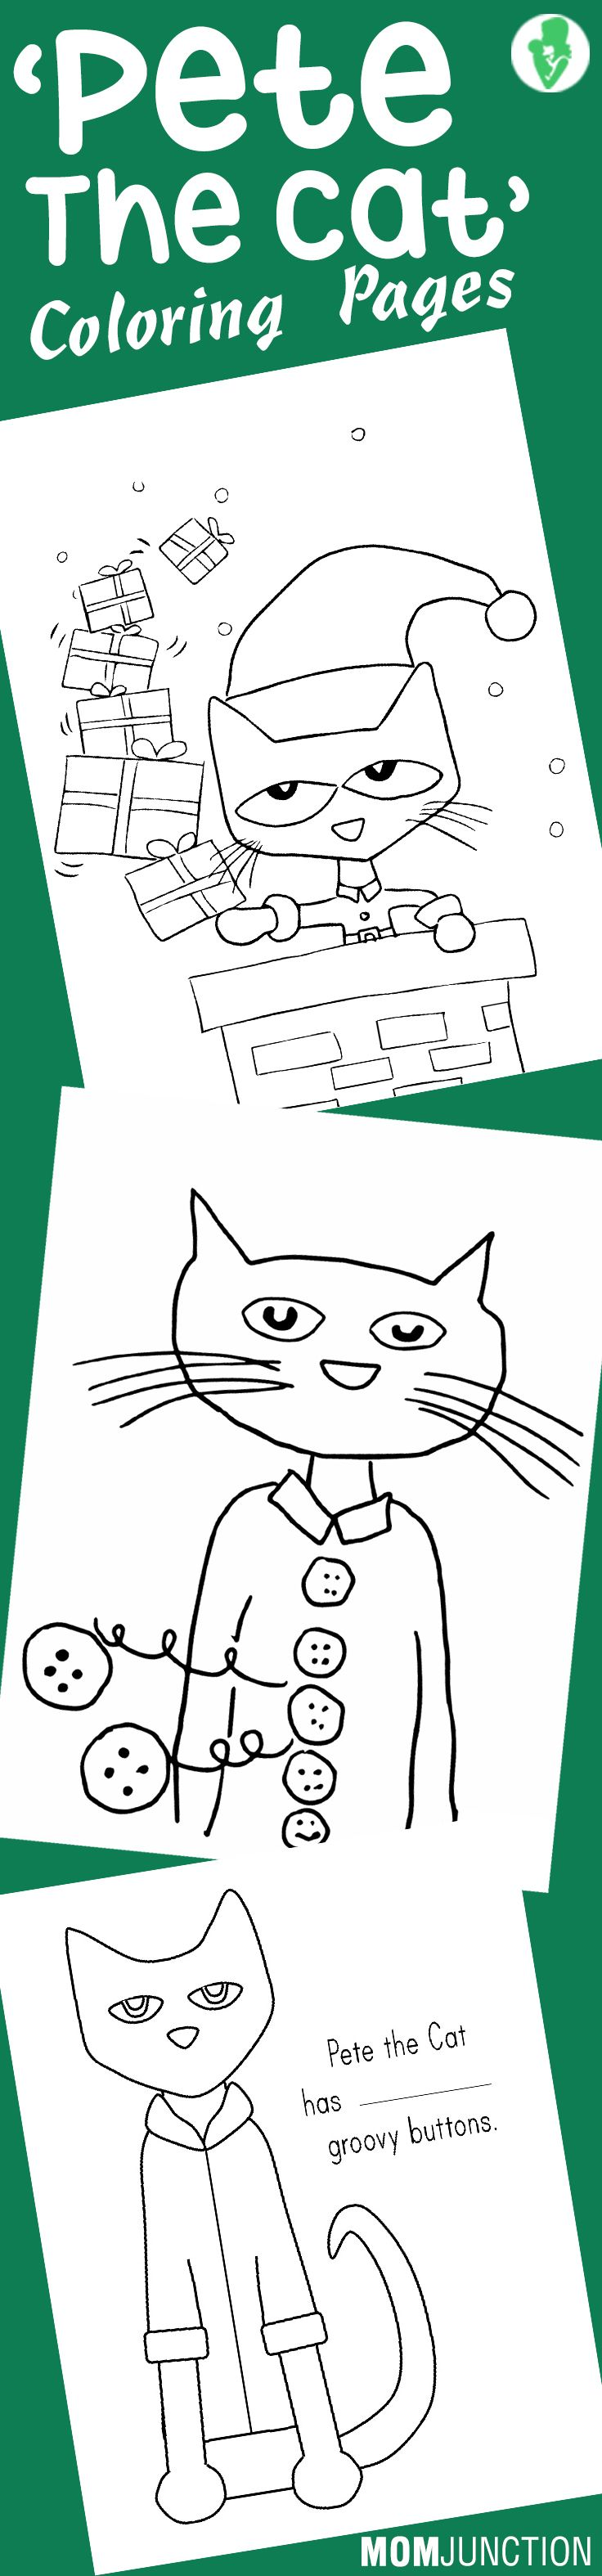 Preschool coloring games online free - Top 20 Free Printable Pete The Cat Coloring Pages Online